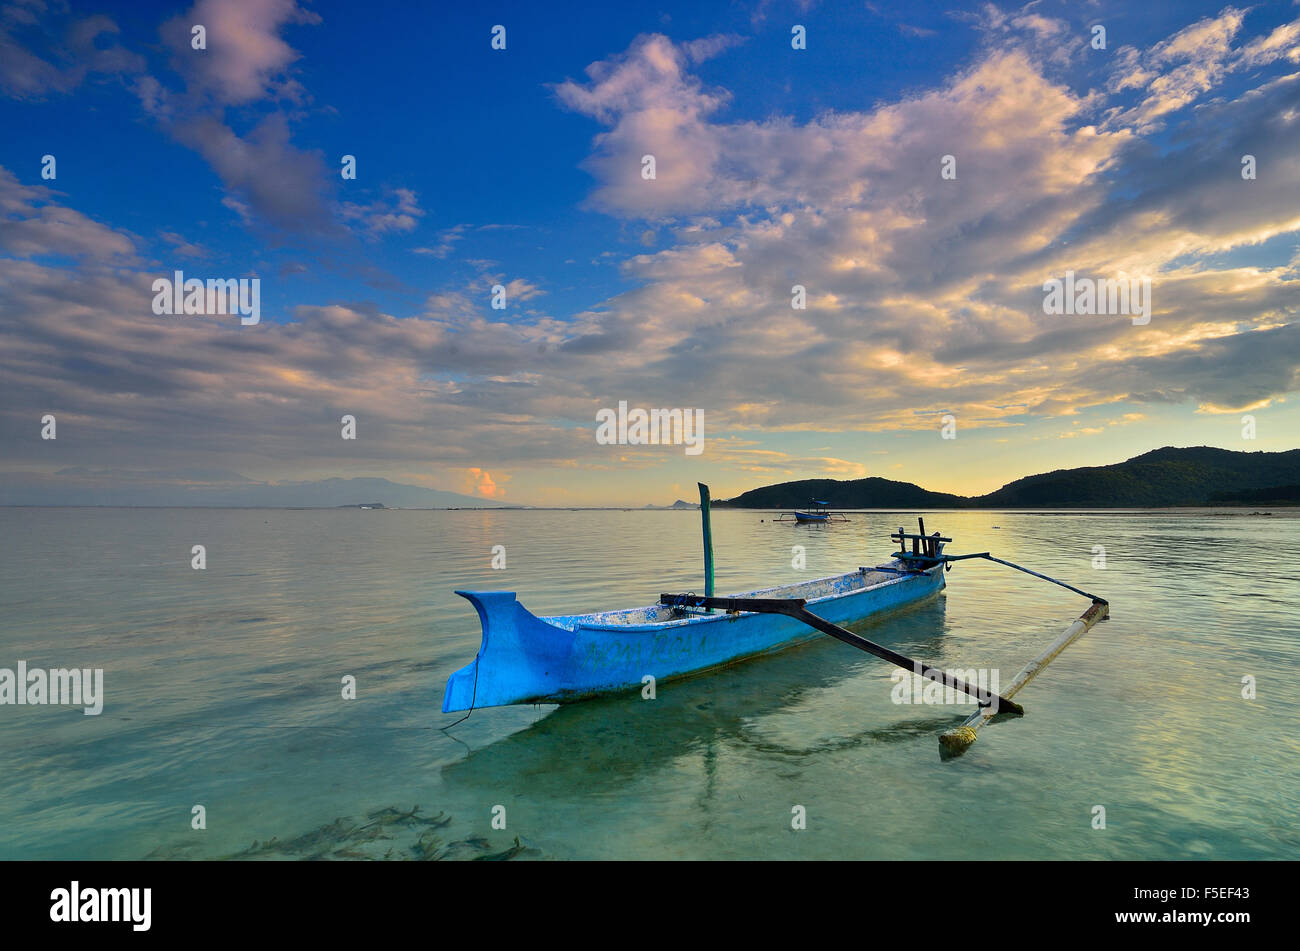 Boat anchored at Jelenga Beach, Sumbawa Island, Indonesia - Stock Image